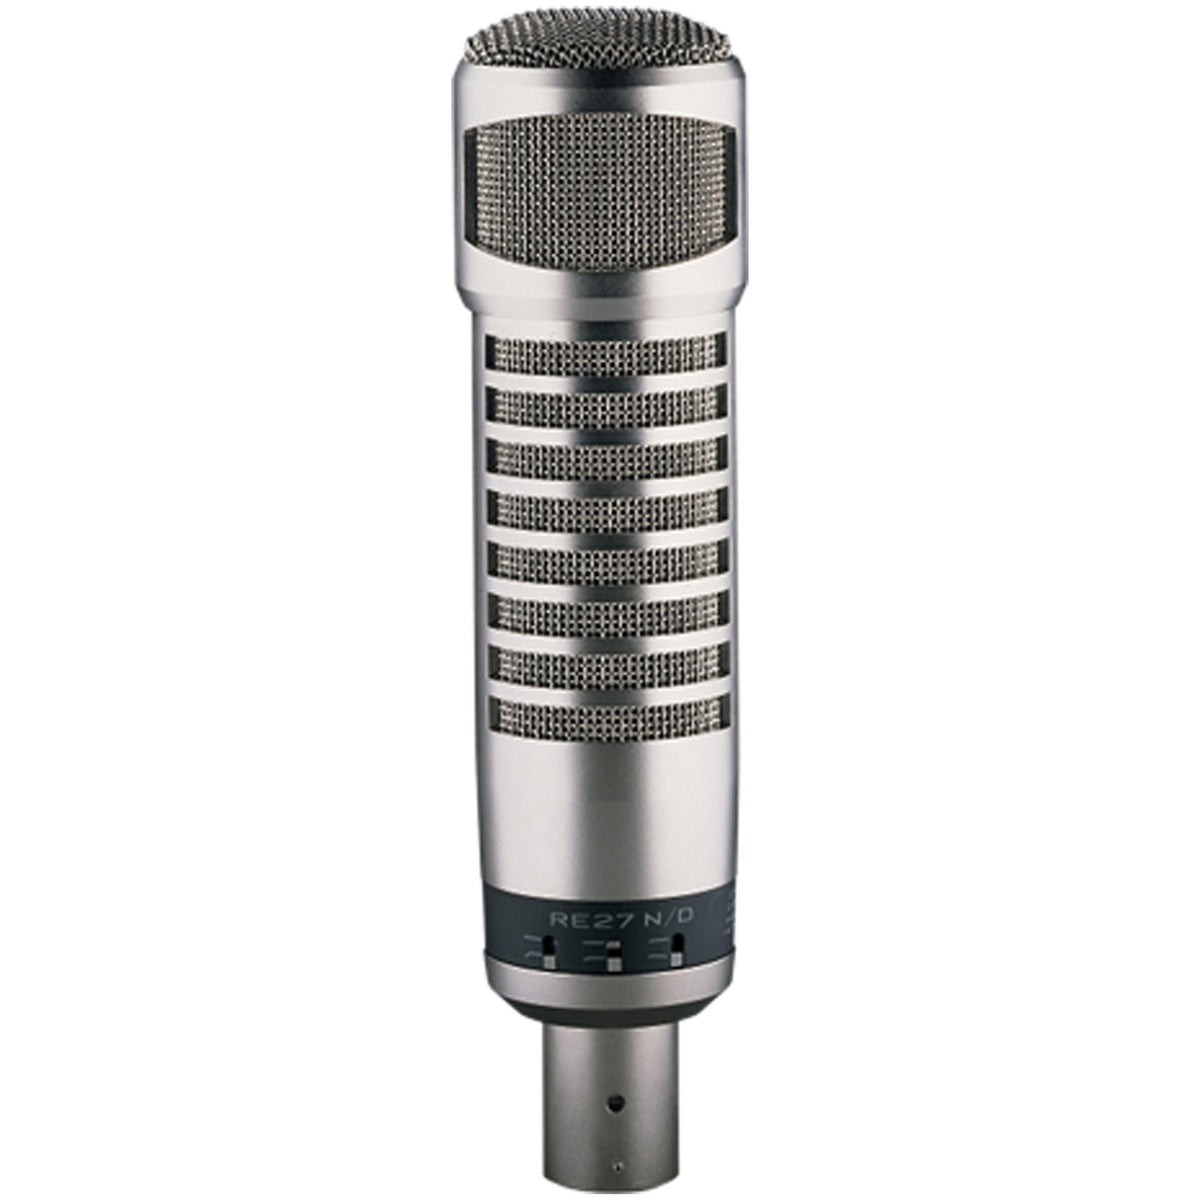 Electro-Voice RE27 N/D Dynamic Cardioid Microphone